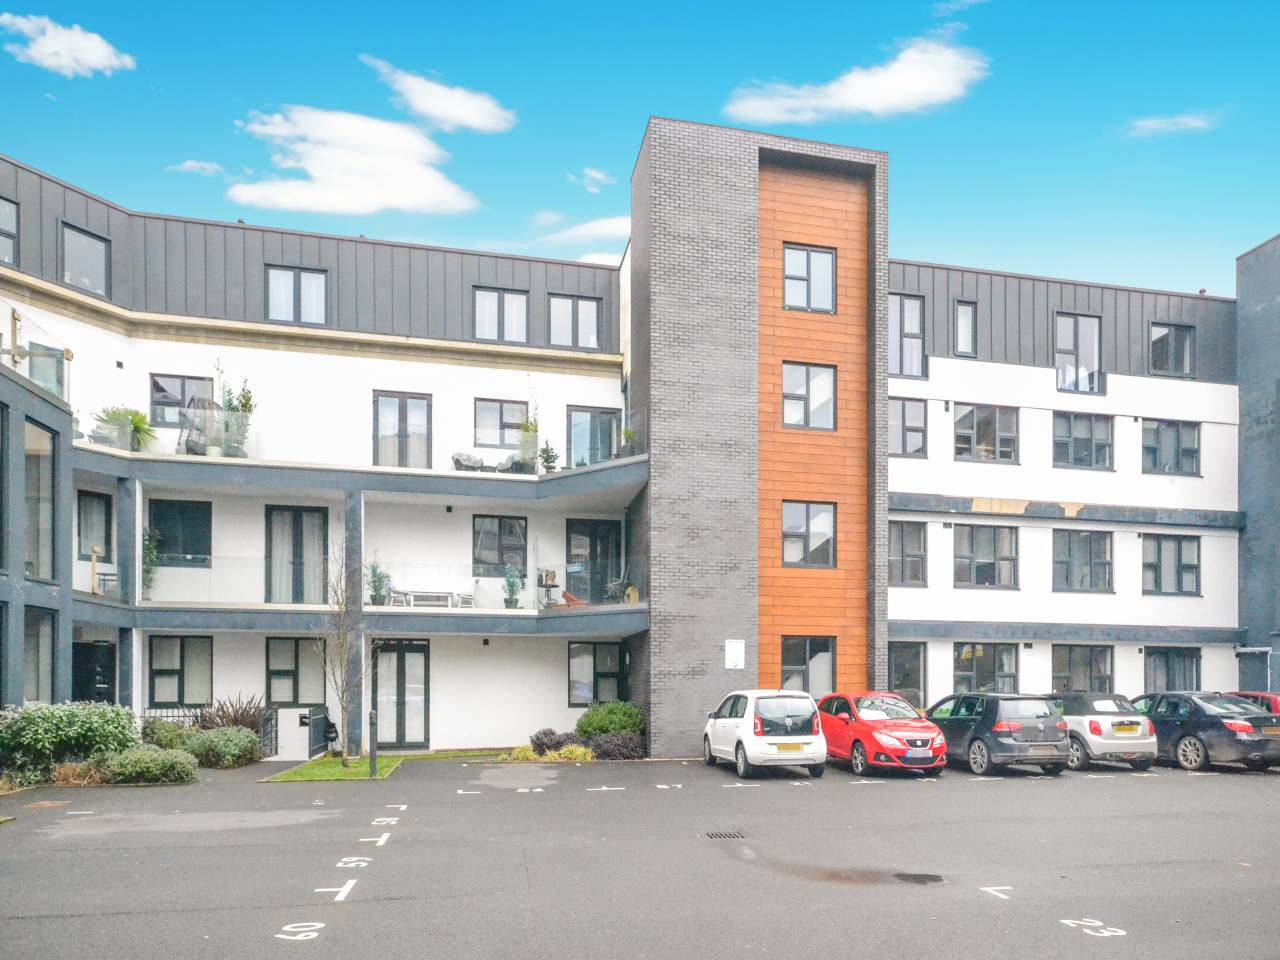 2 bed flat for sale in 3 Sandbanks Road, Poole, BH15